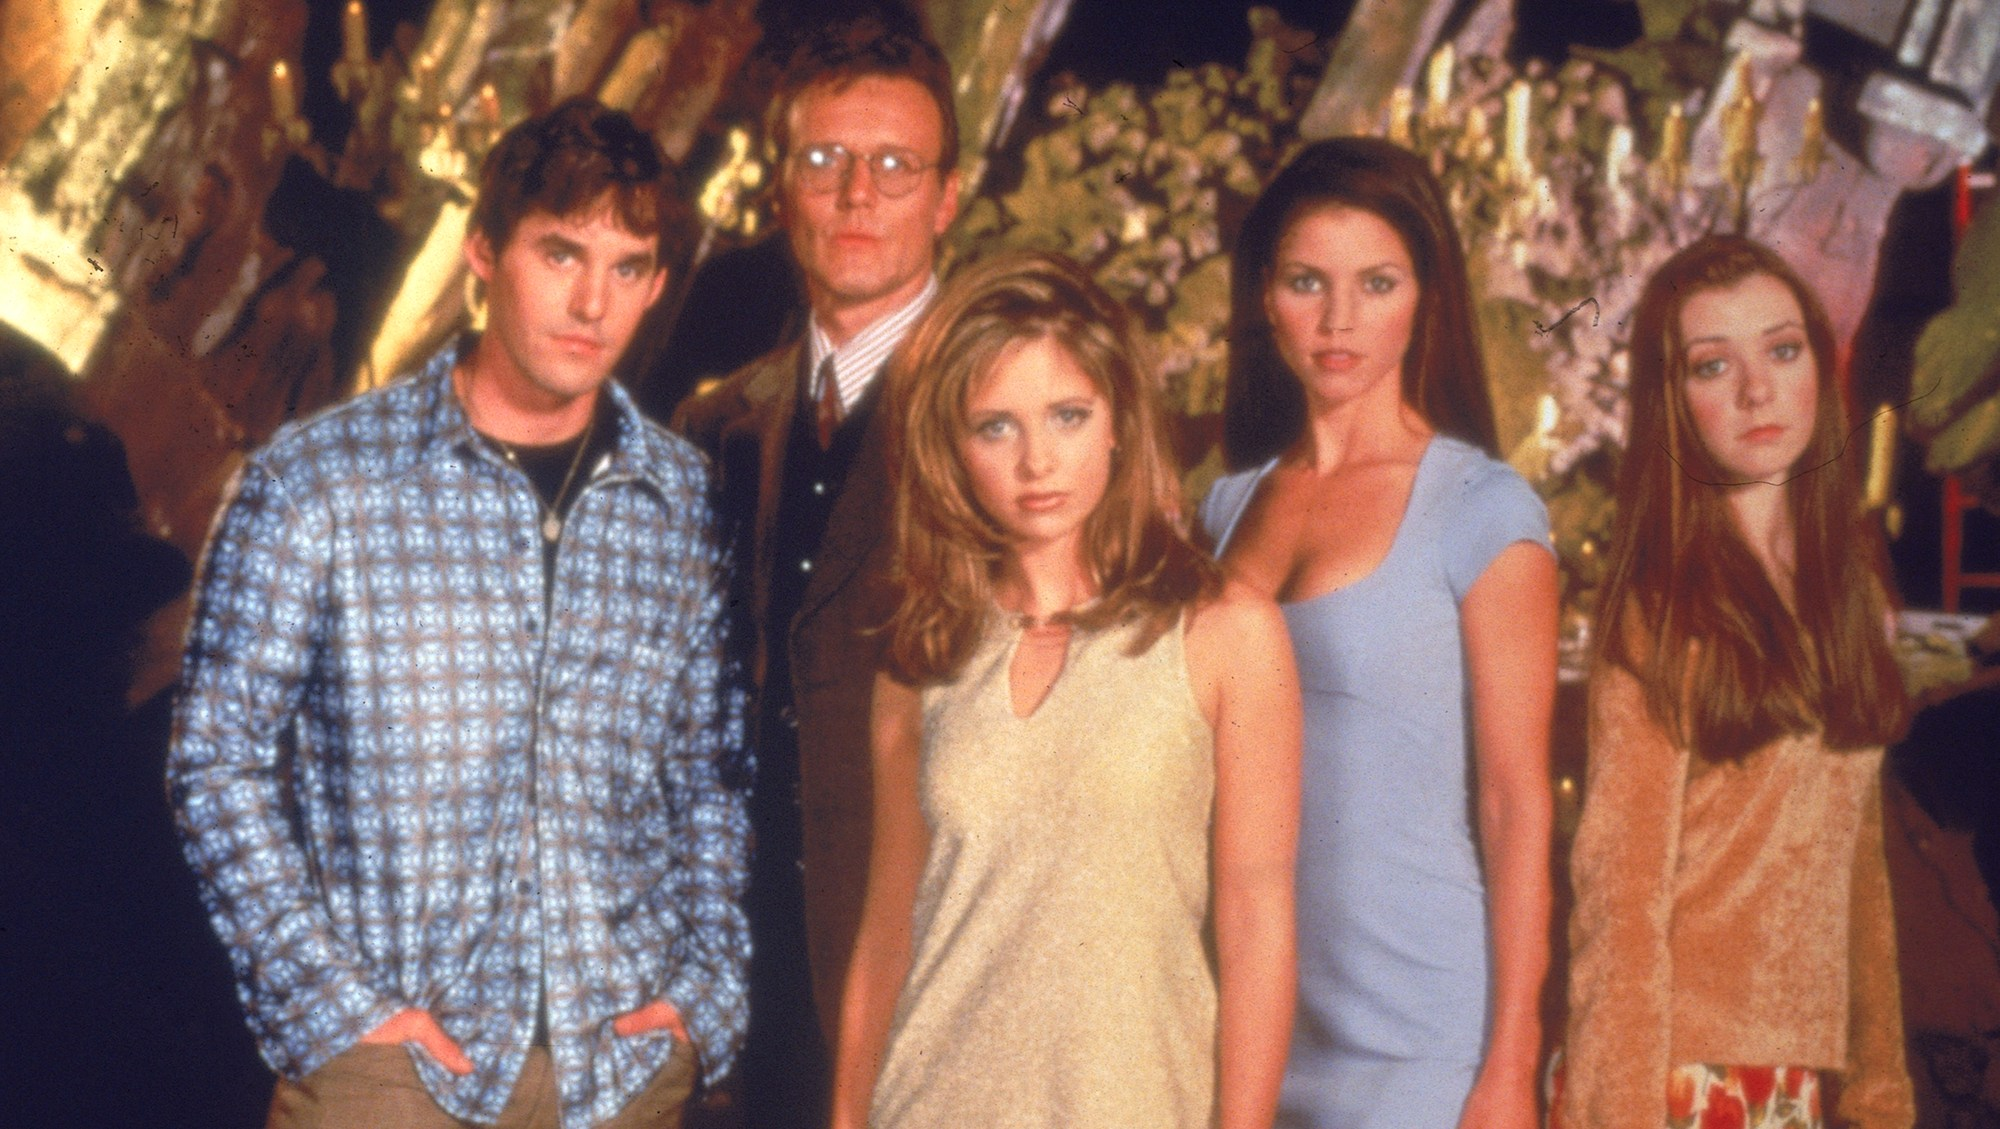 'Buffy The Vampire Slayer' reboot